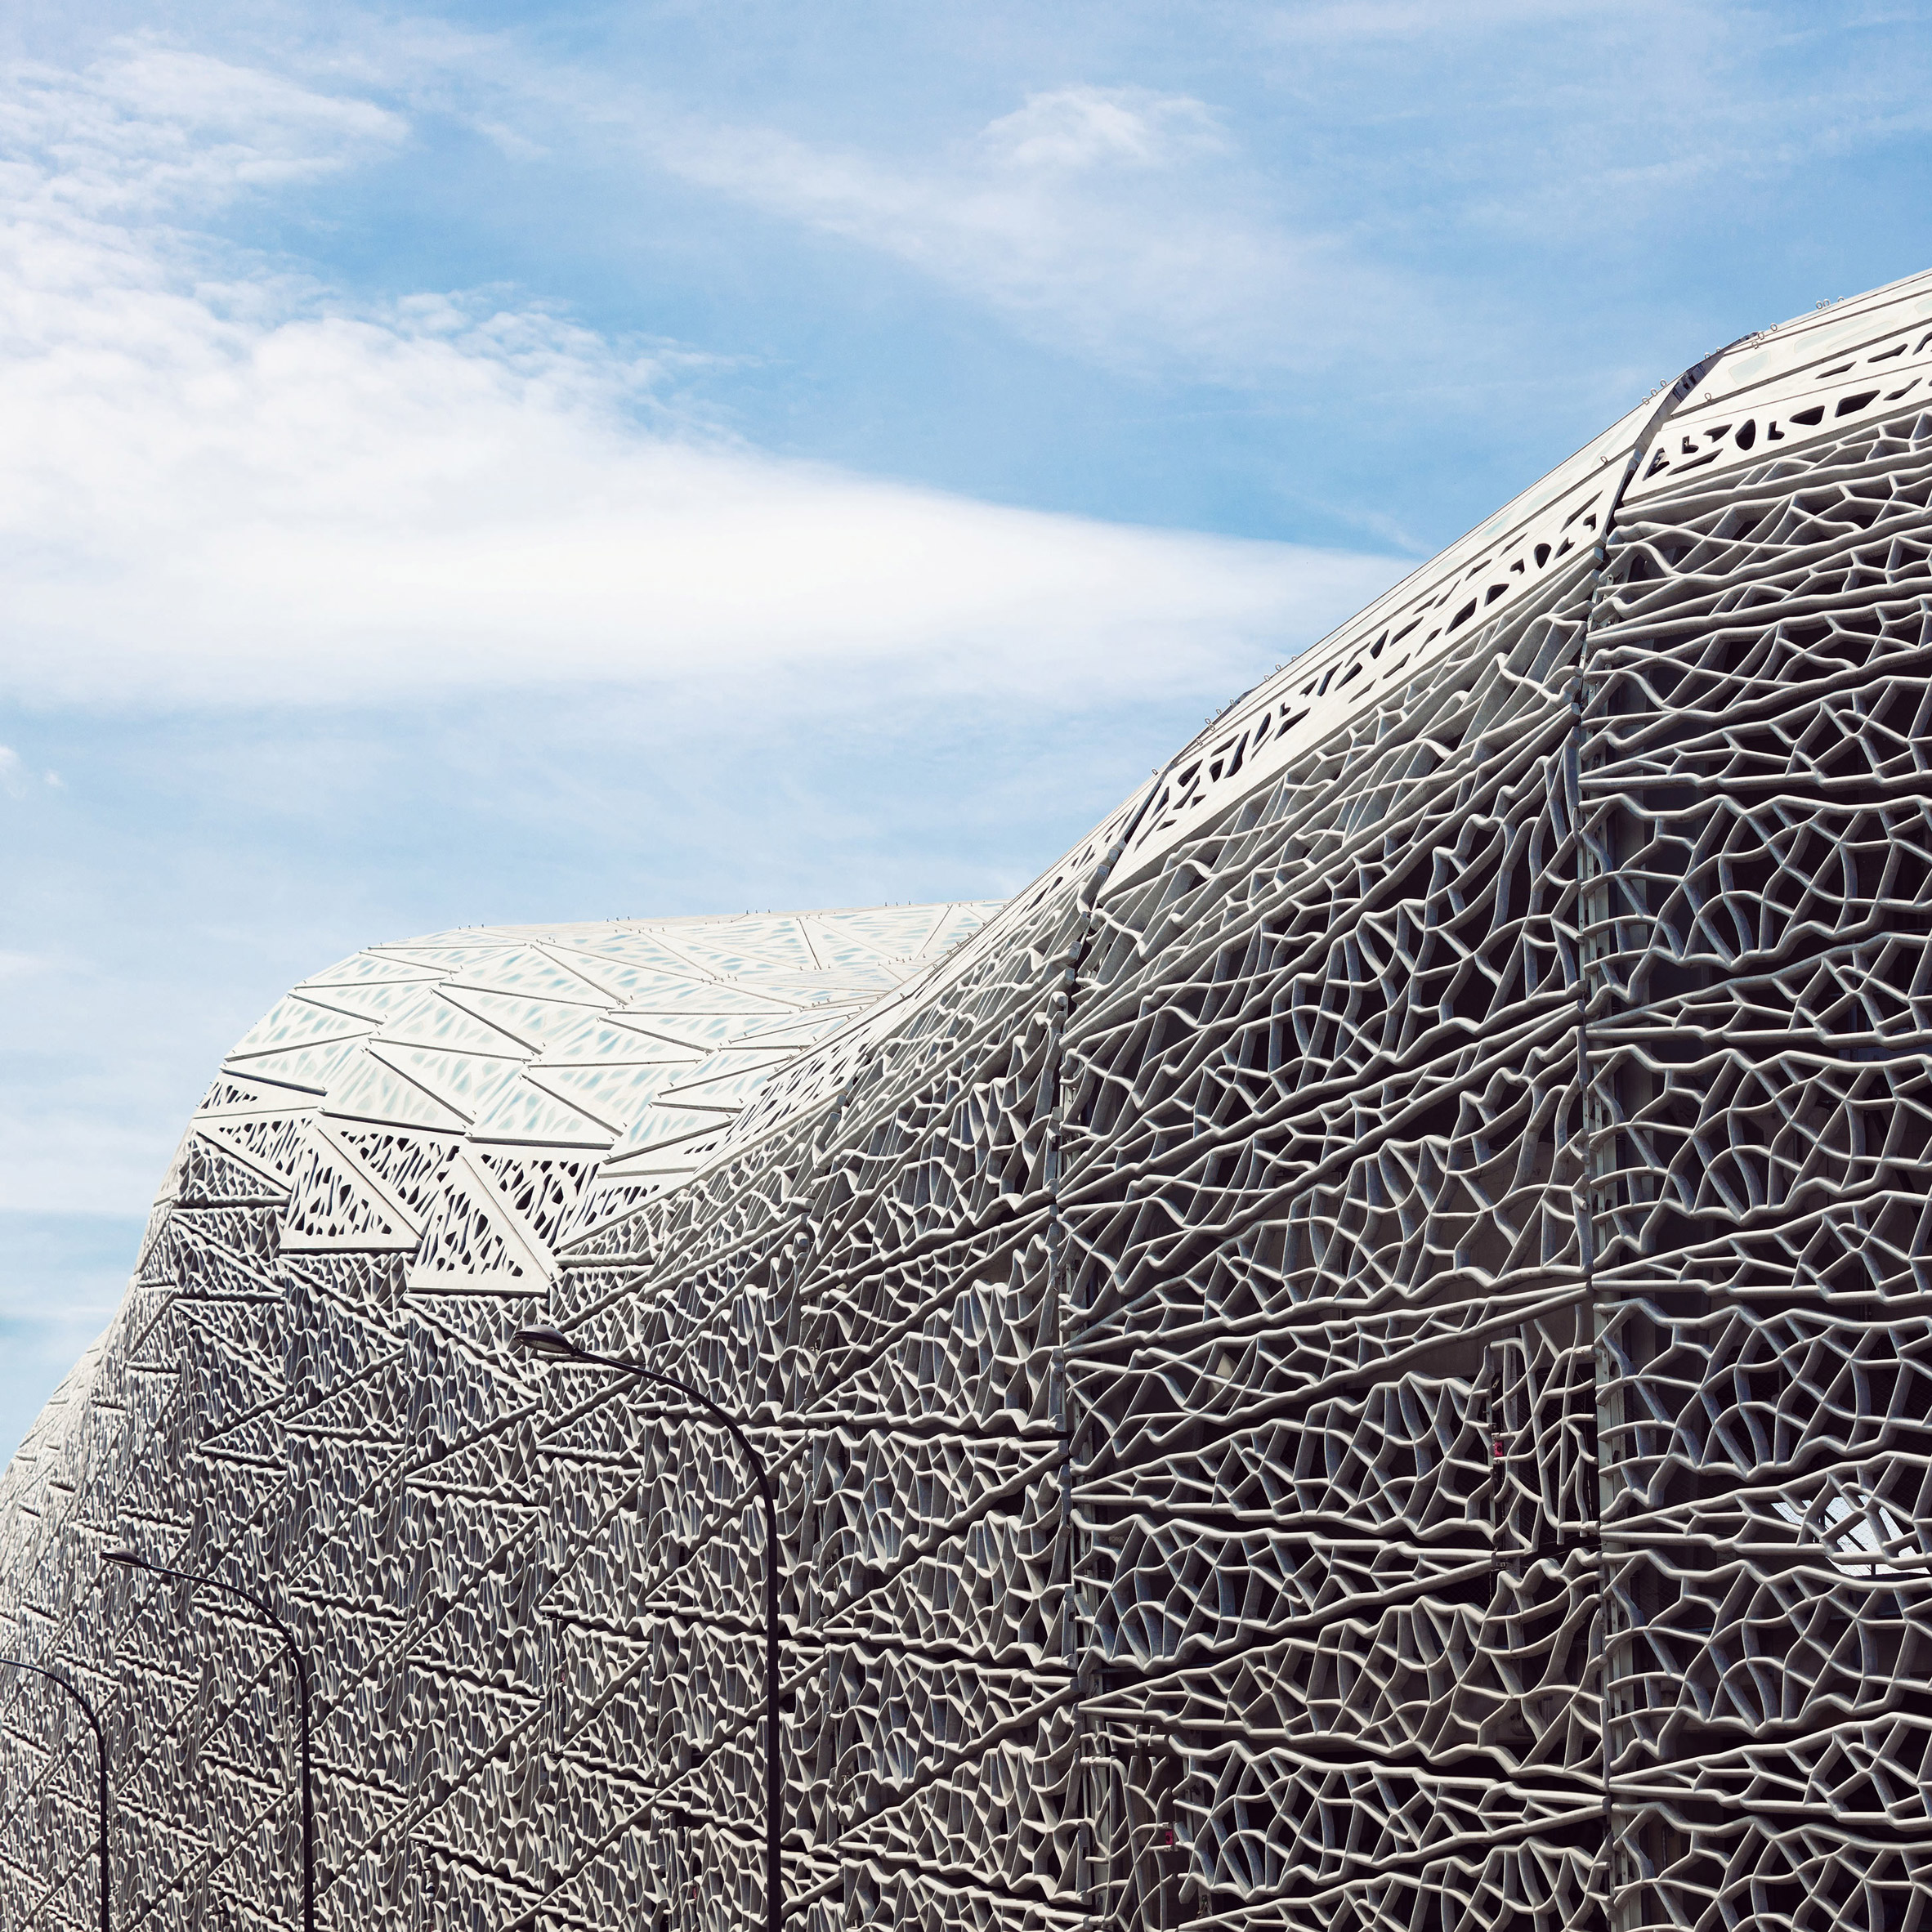 Architecture Photography Series architecture and design photography | dezeen